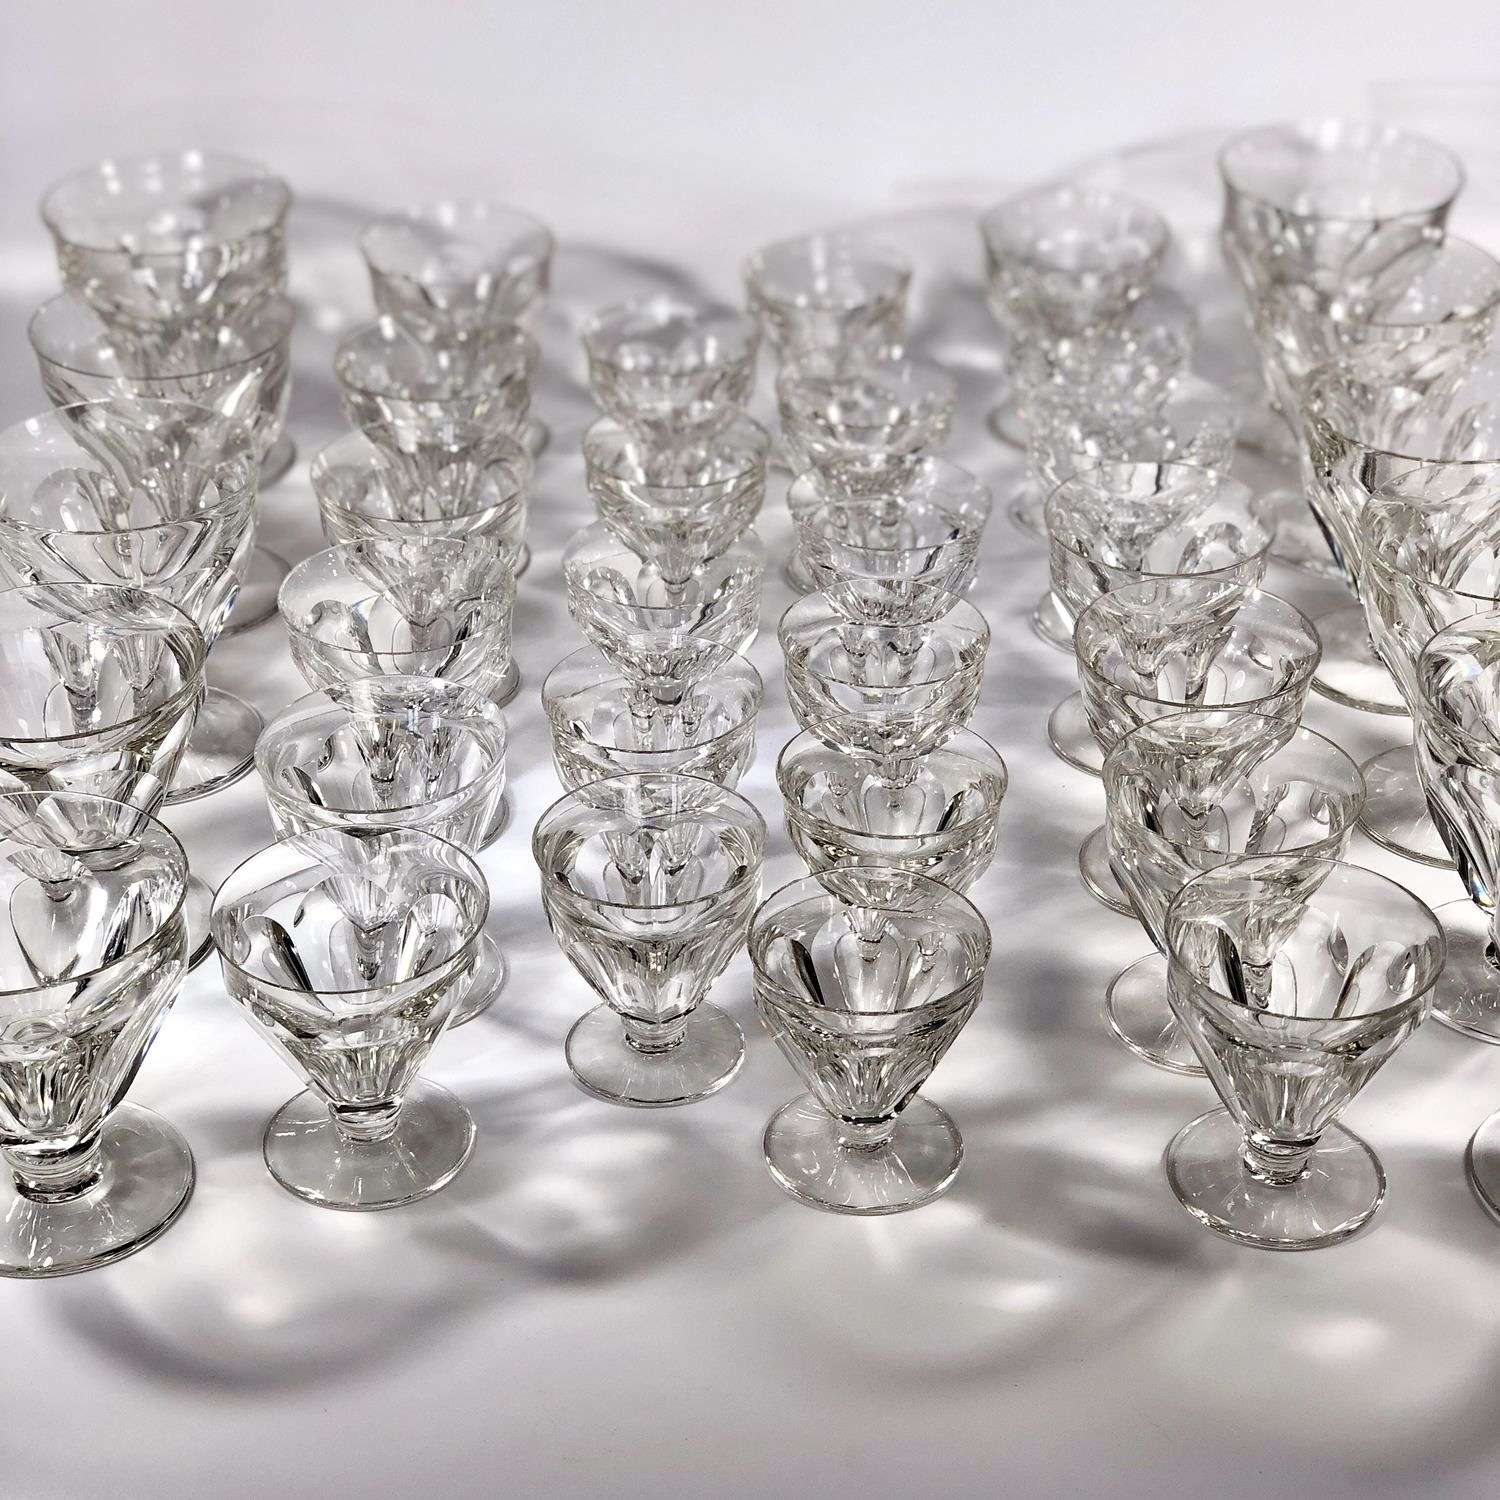 35 Vintage Baccarat crystal drinking glasses